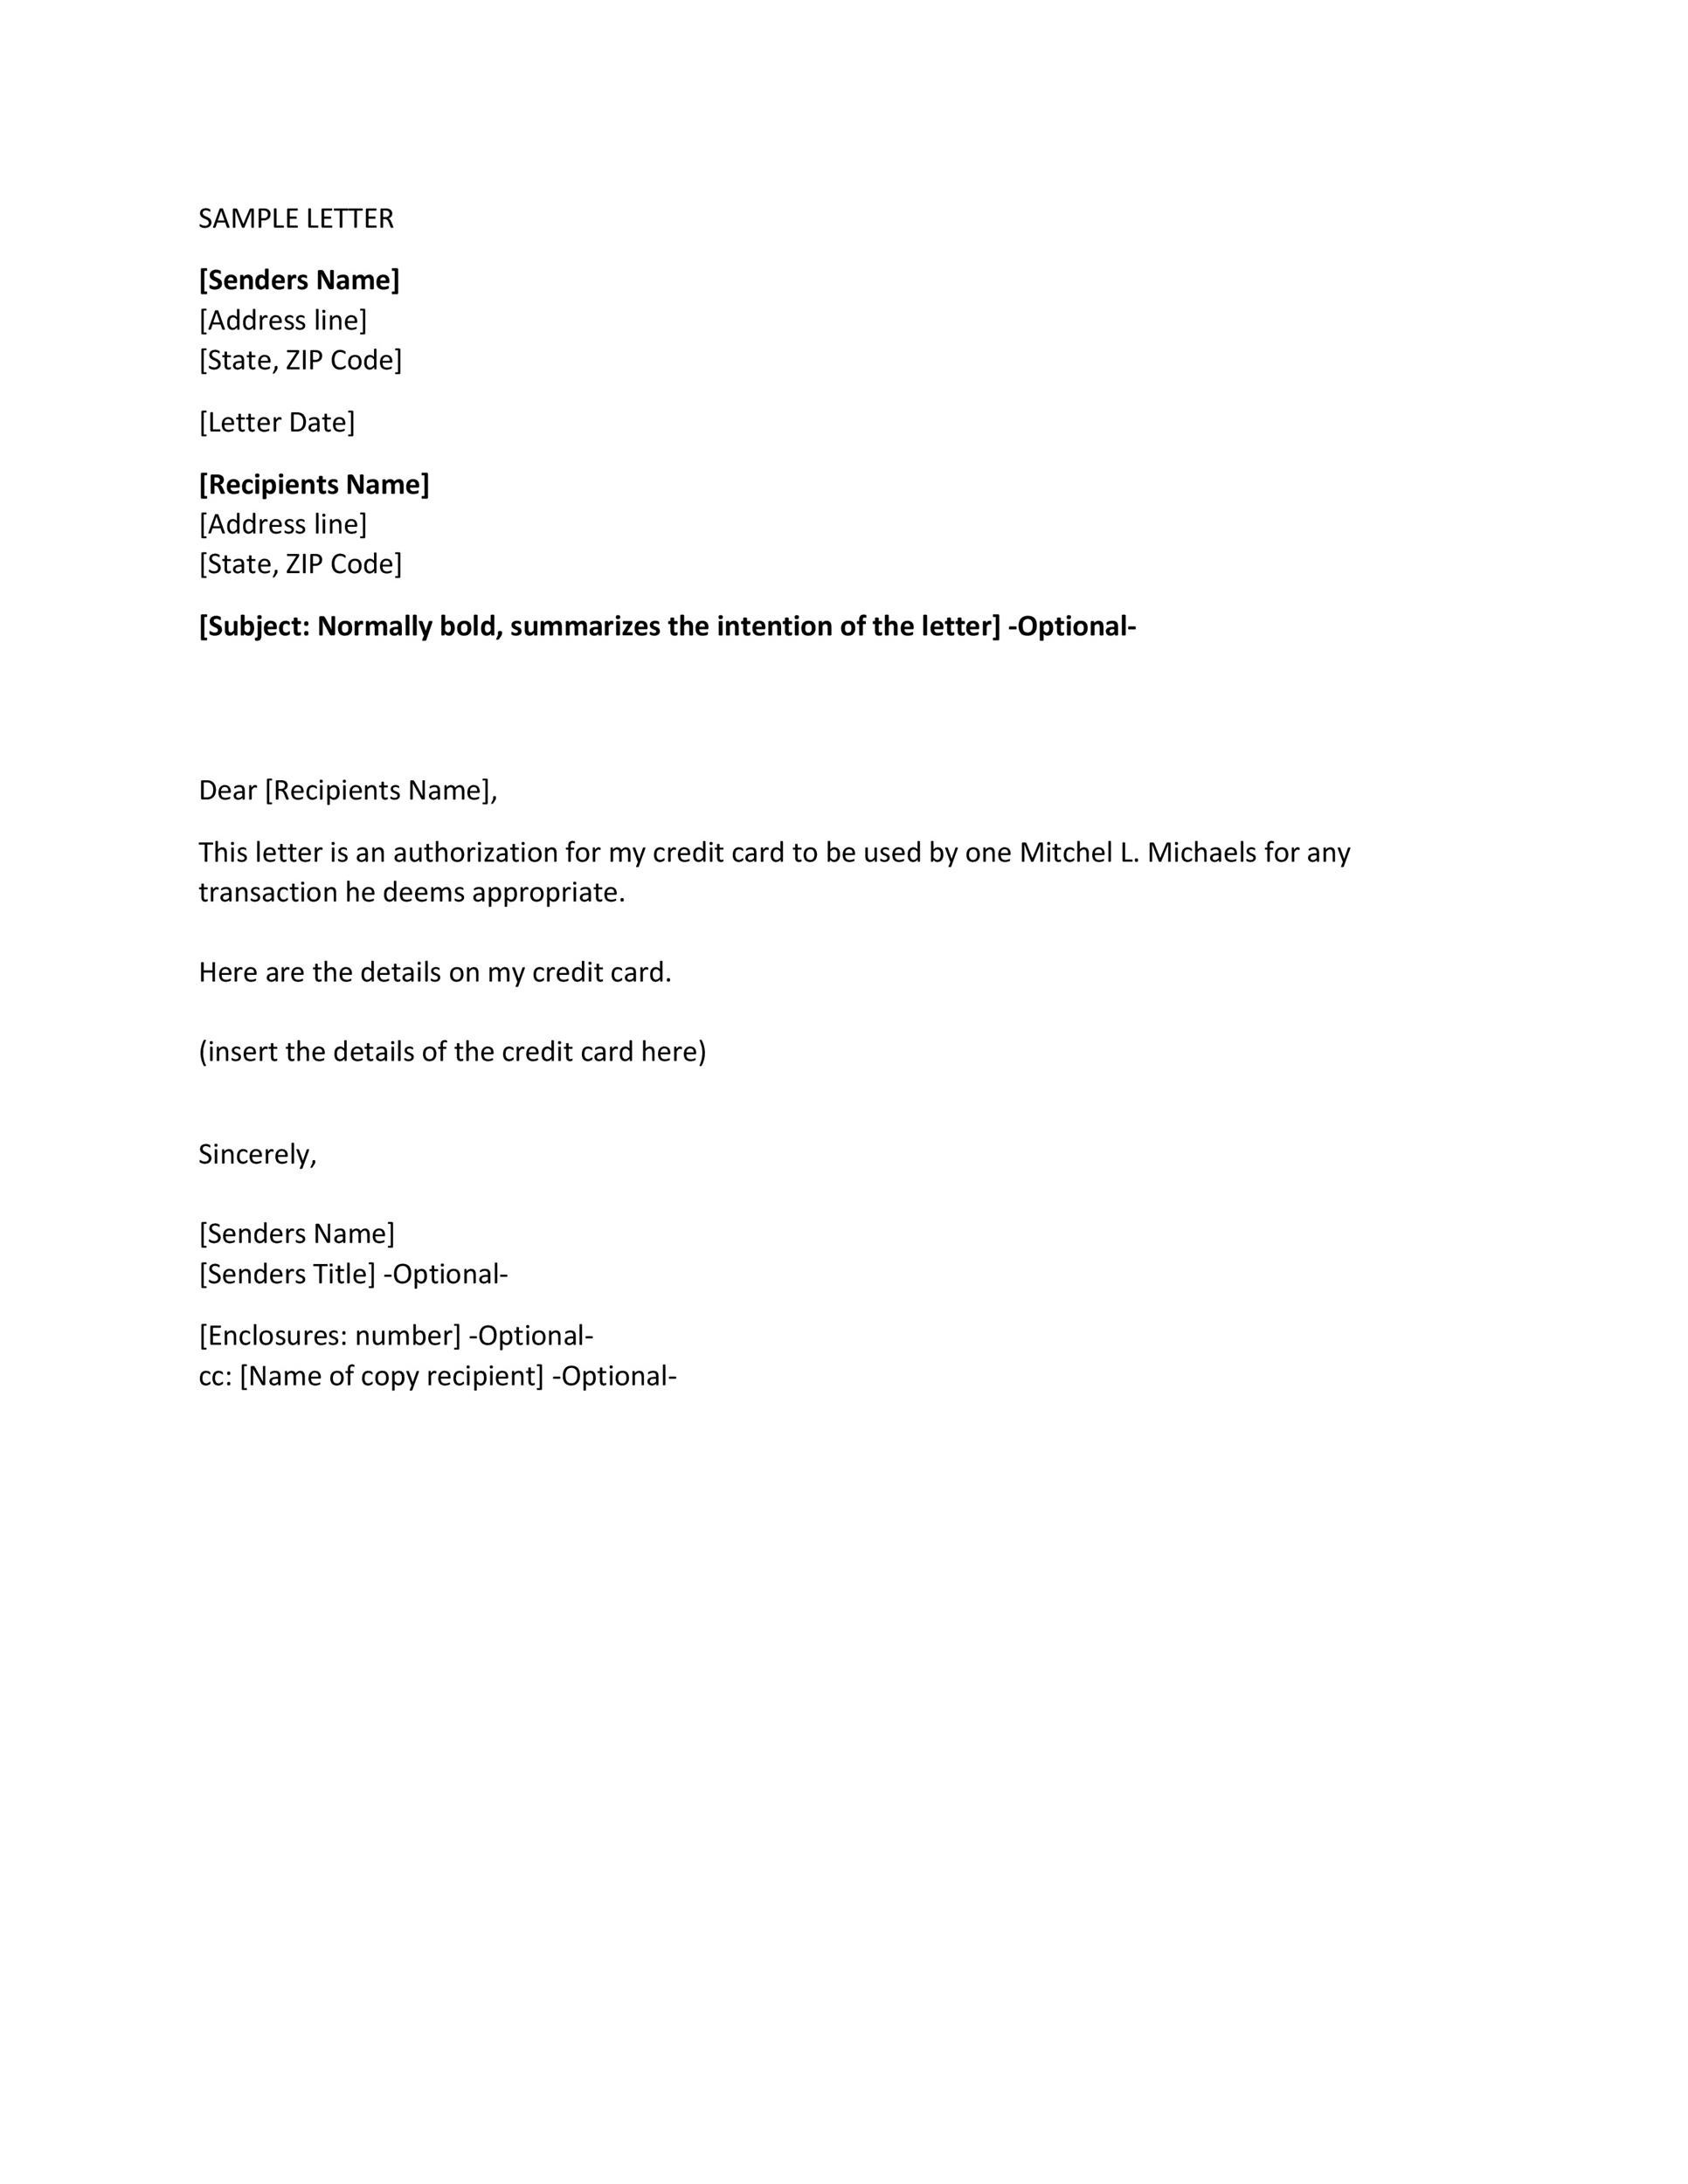 46 Authorization Letter Samples  Templates - Template Lab - sample authorization letter